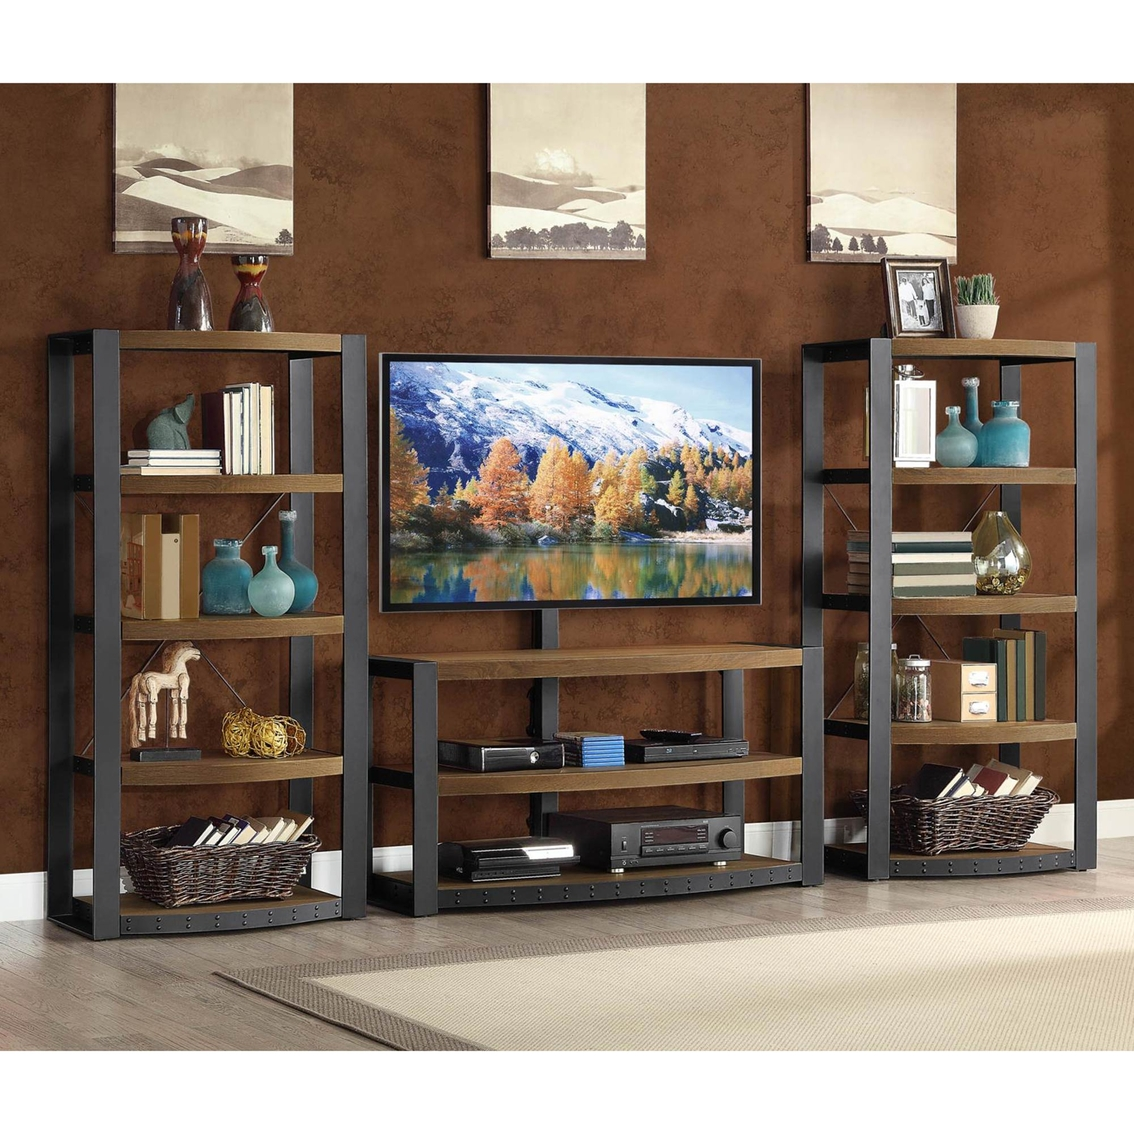 Whalen Furniture Santa Fe Audio Tower Media Furniture Home